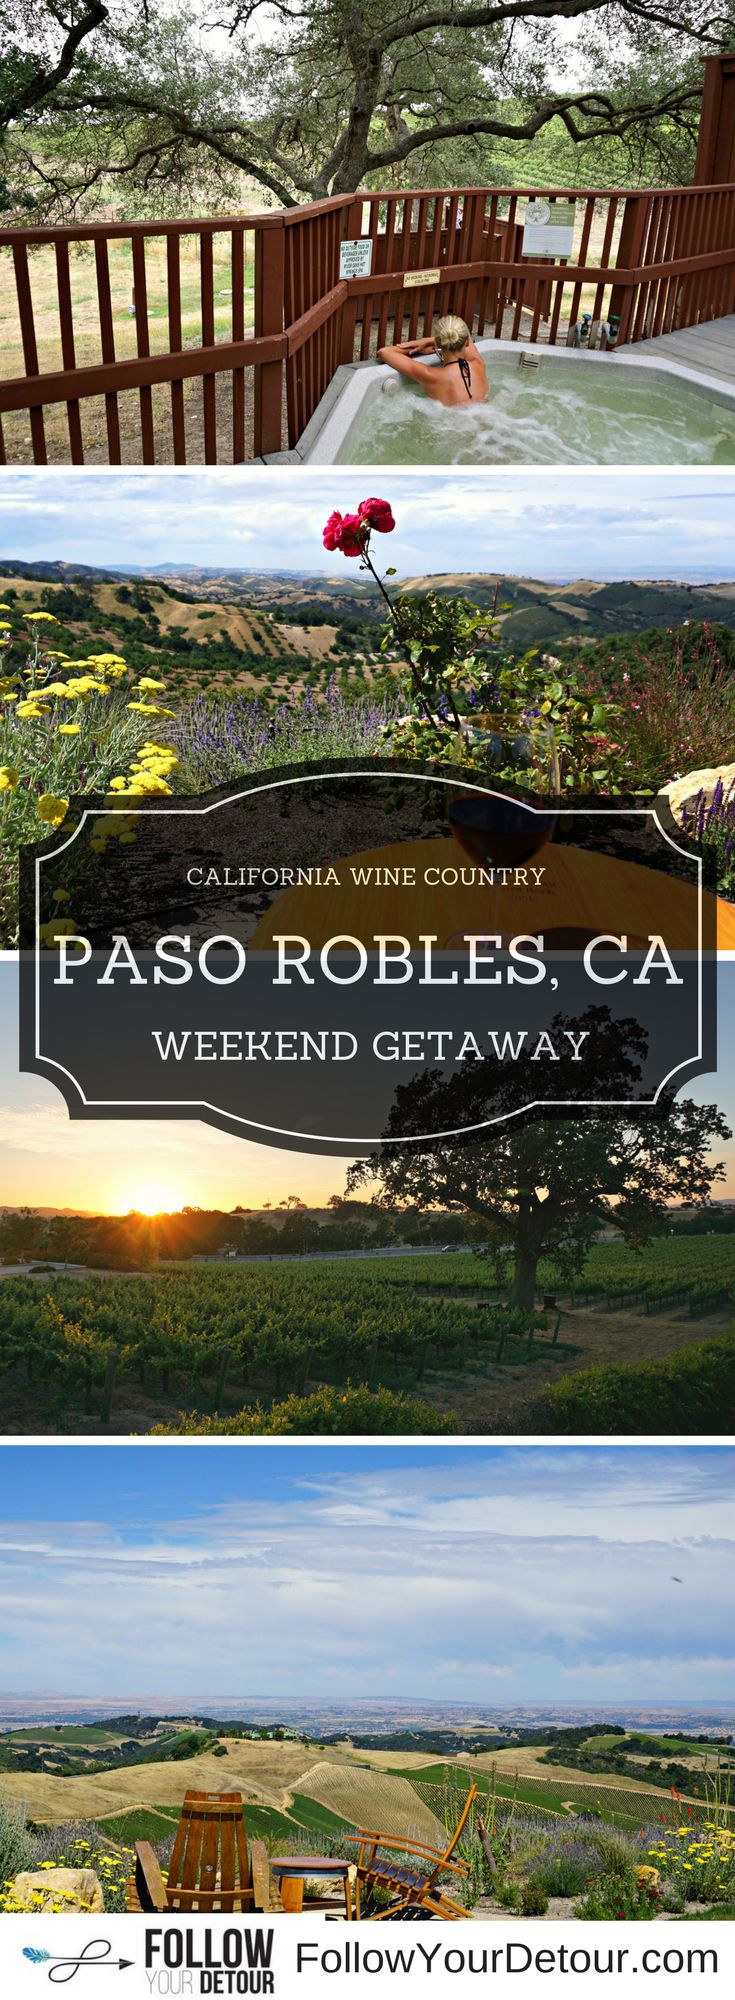 Looking for a great weekend getaway? Paso Robles is another amazing city in California wine country that we had never heard of prior to our RV travels. It has everything you could want...wine tasting, breathtaking views, hot springs, and a charming downtown! Read this article for our top activity suggestions and then get to planning your own trip there.